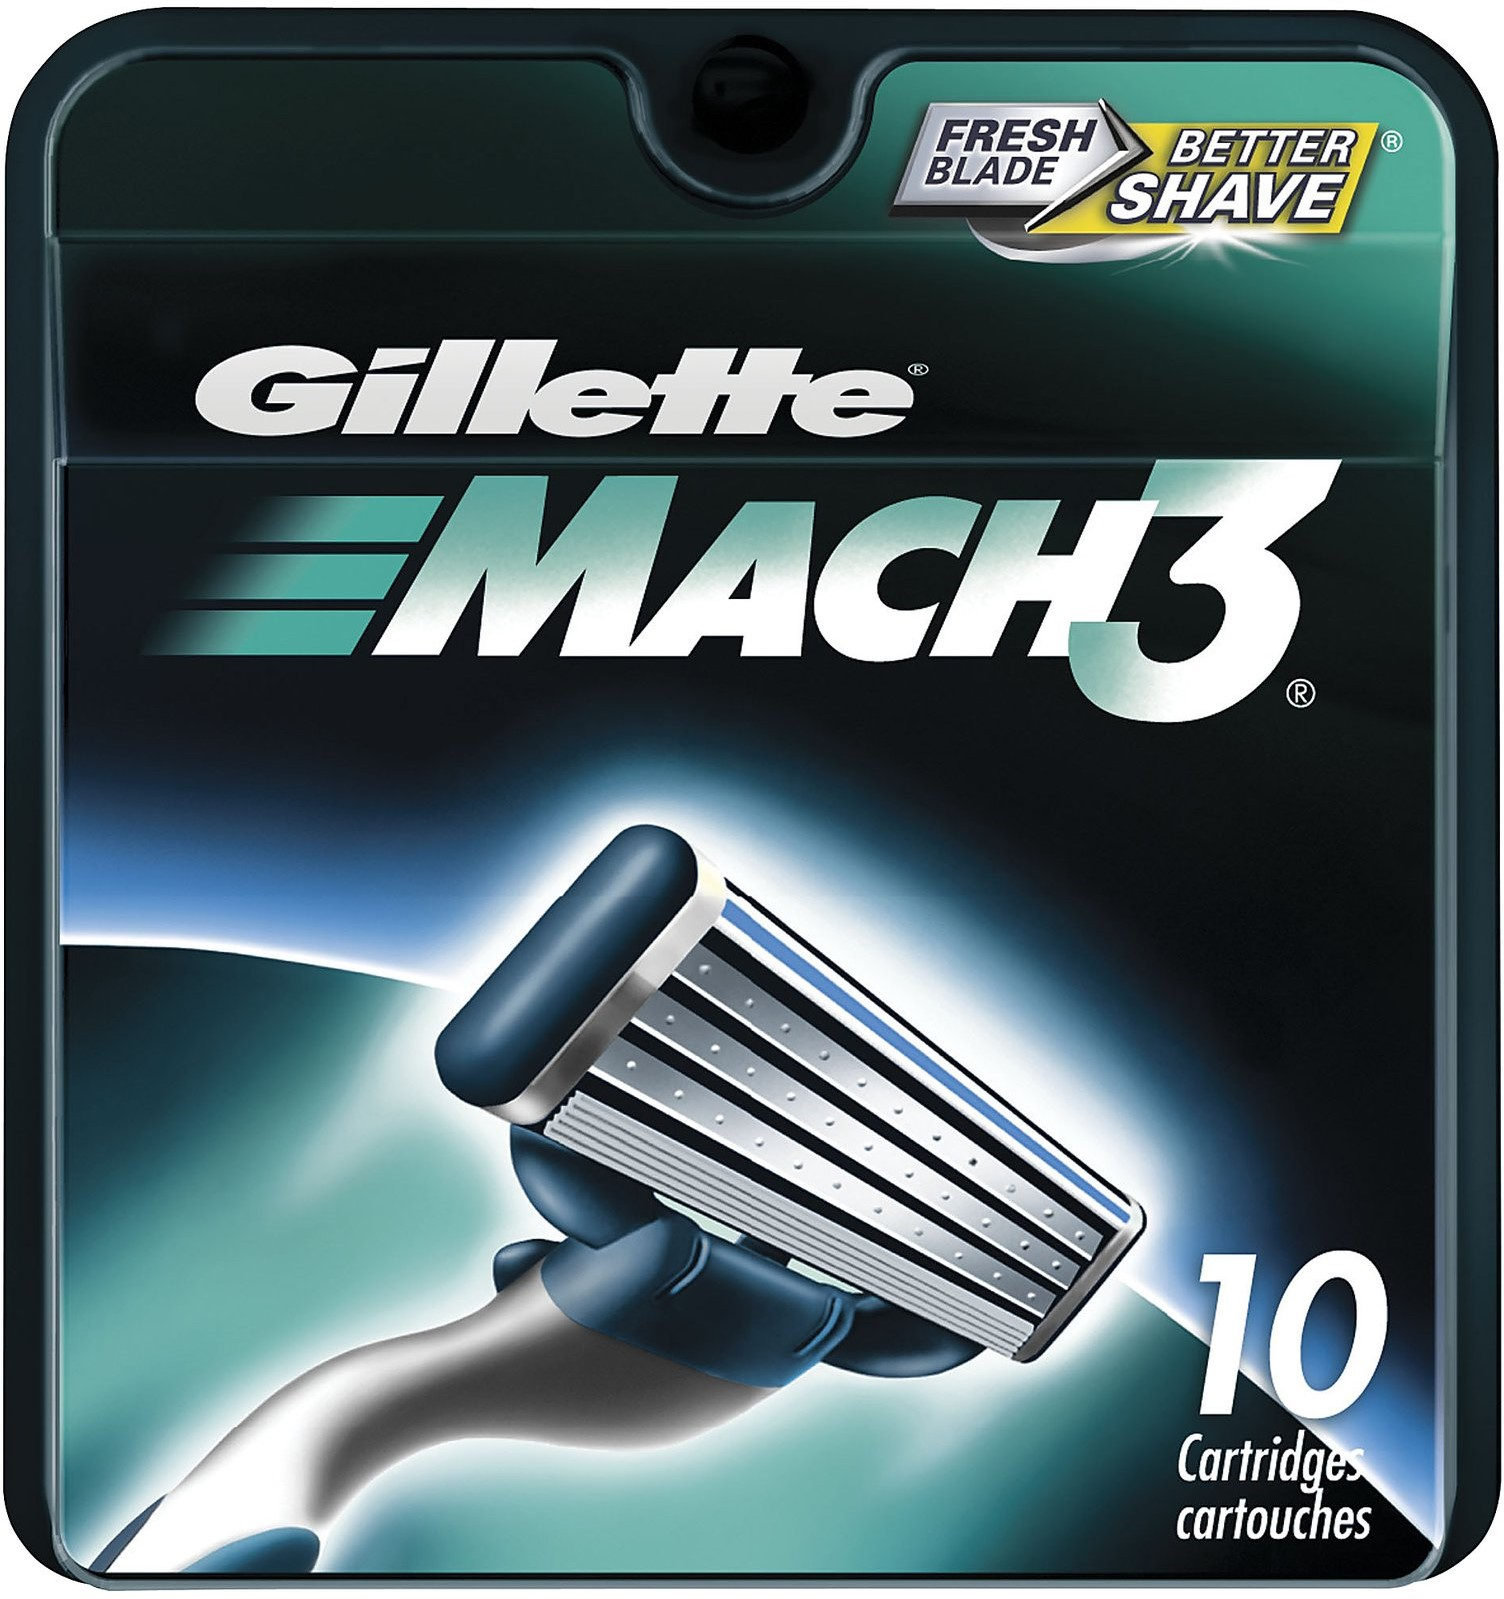 Gillette MACH3 Refill Cartridges 10 ea (Pack of 3)